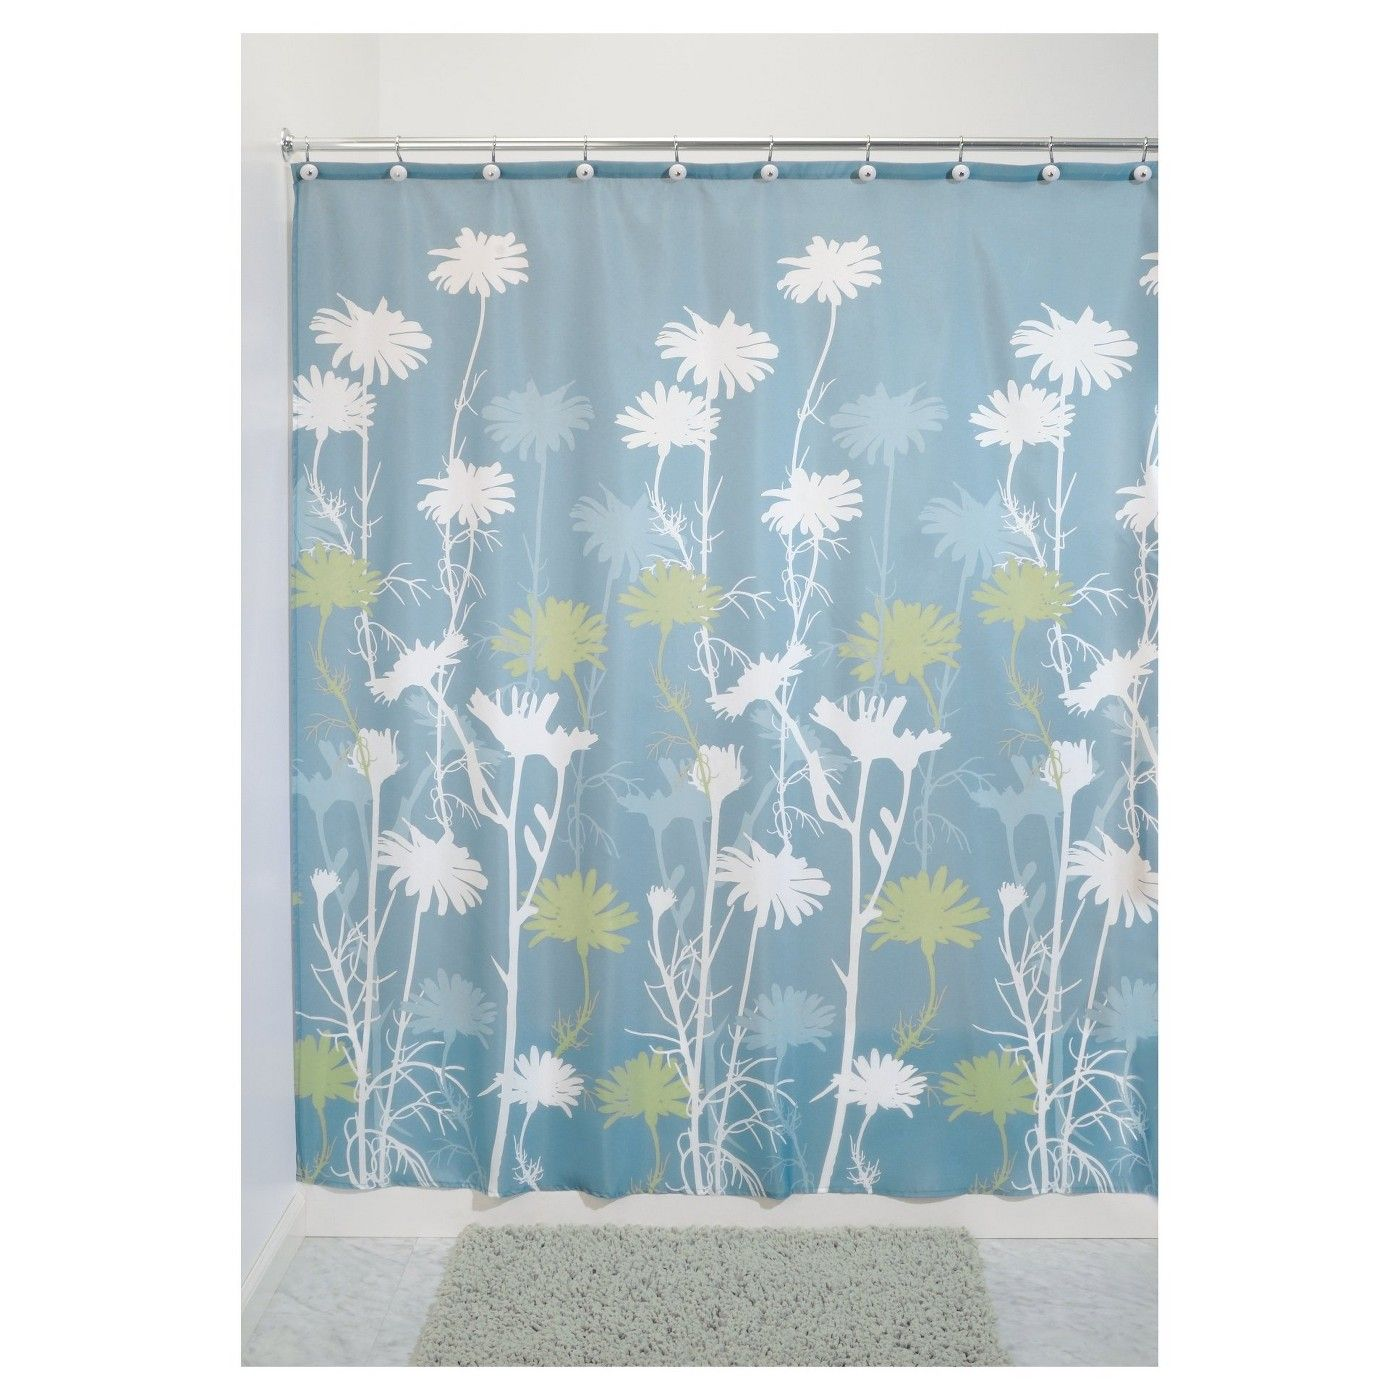 Daisy Shower Curtains Gray Yellow Interdesign Image 1 Of 1